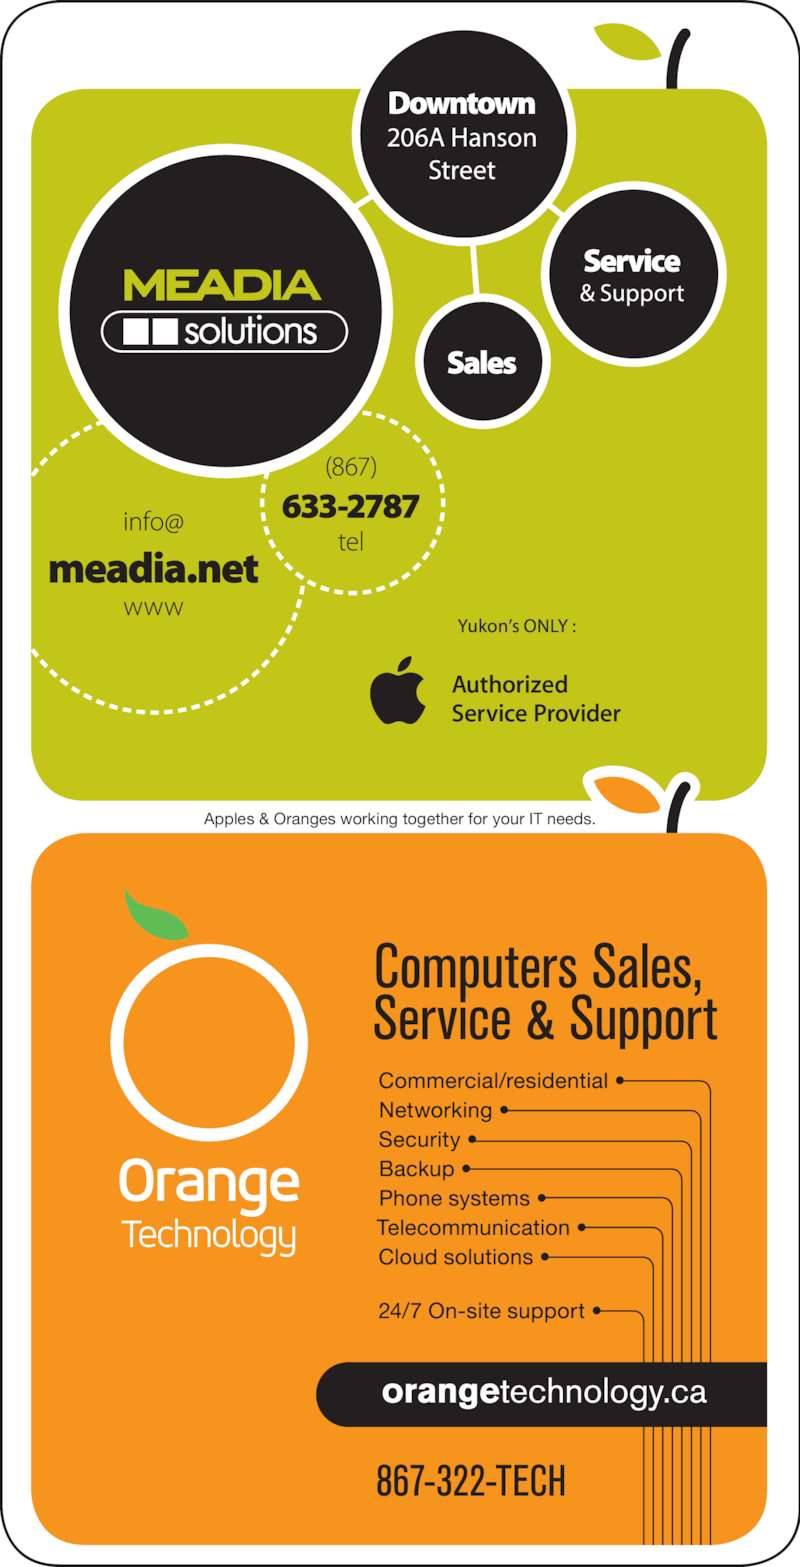 MEADIAsolutions (867-633-2787) - Display Ad - Apples & Oranges working together for your IT needs.